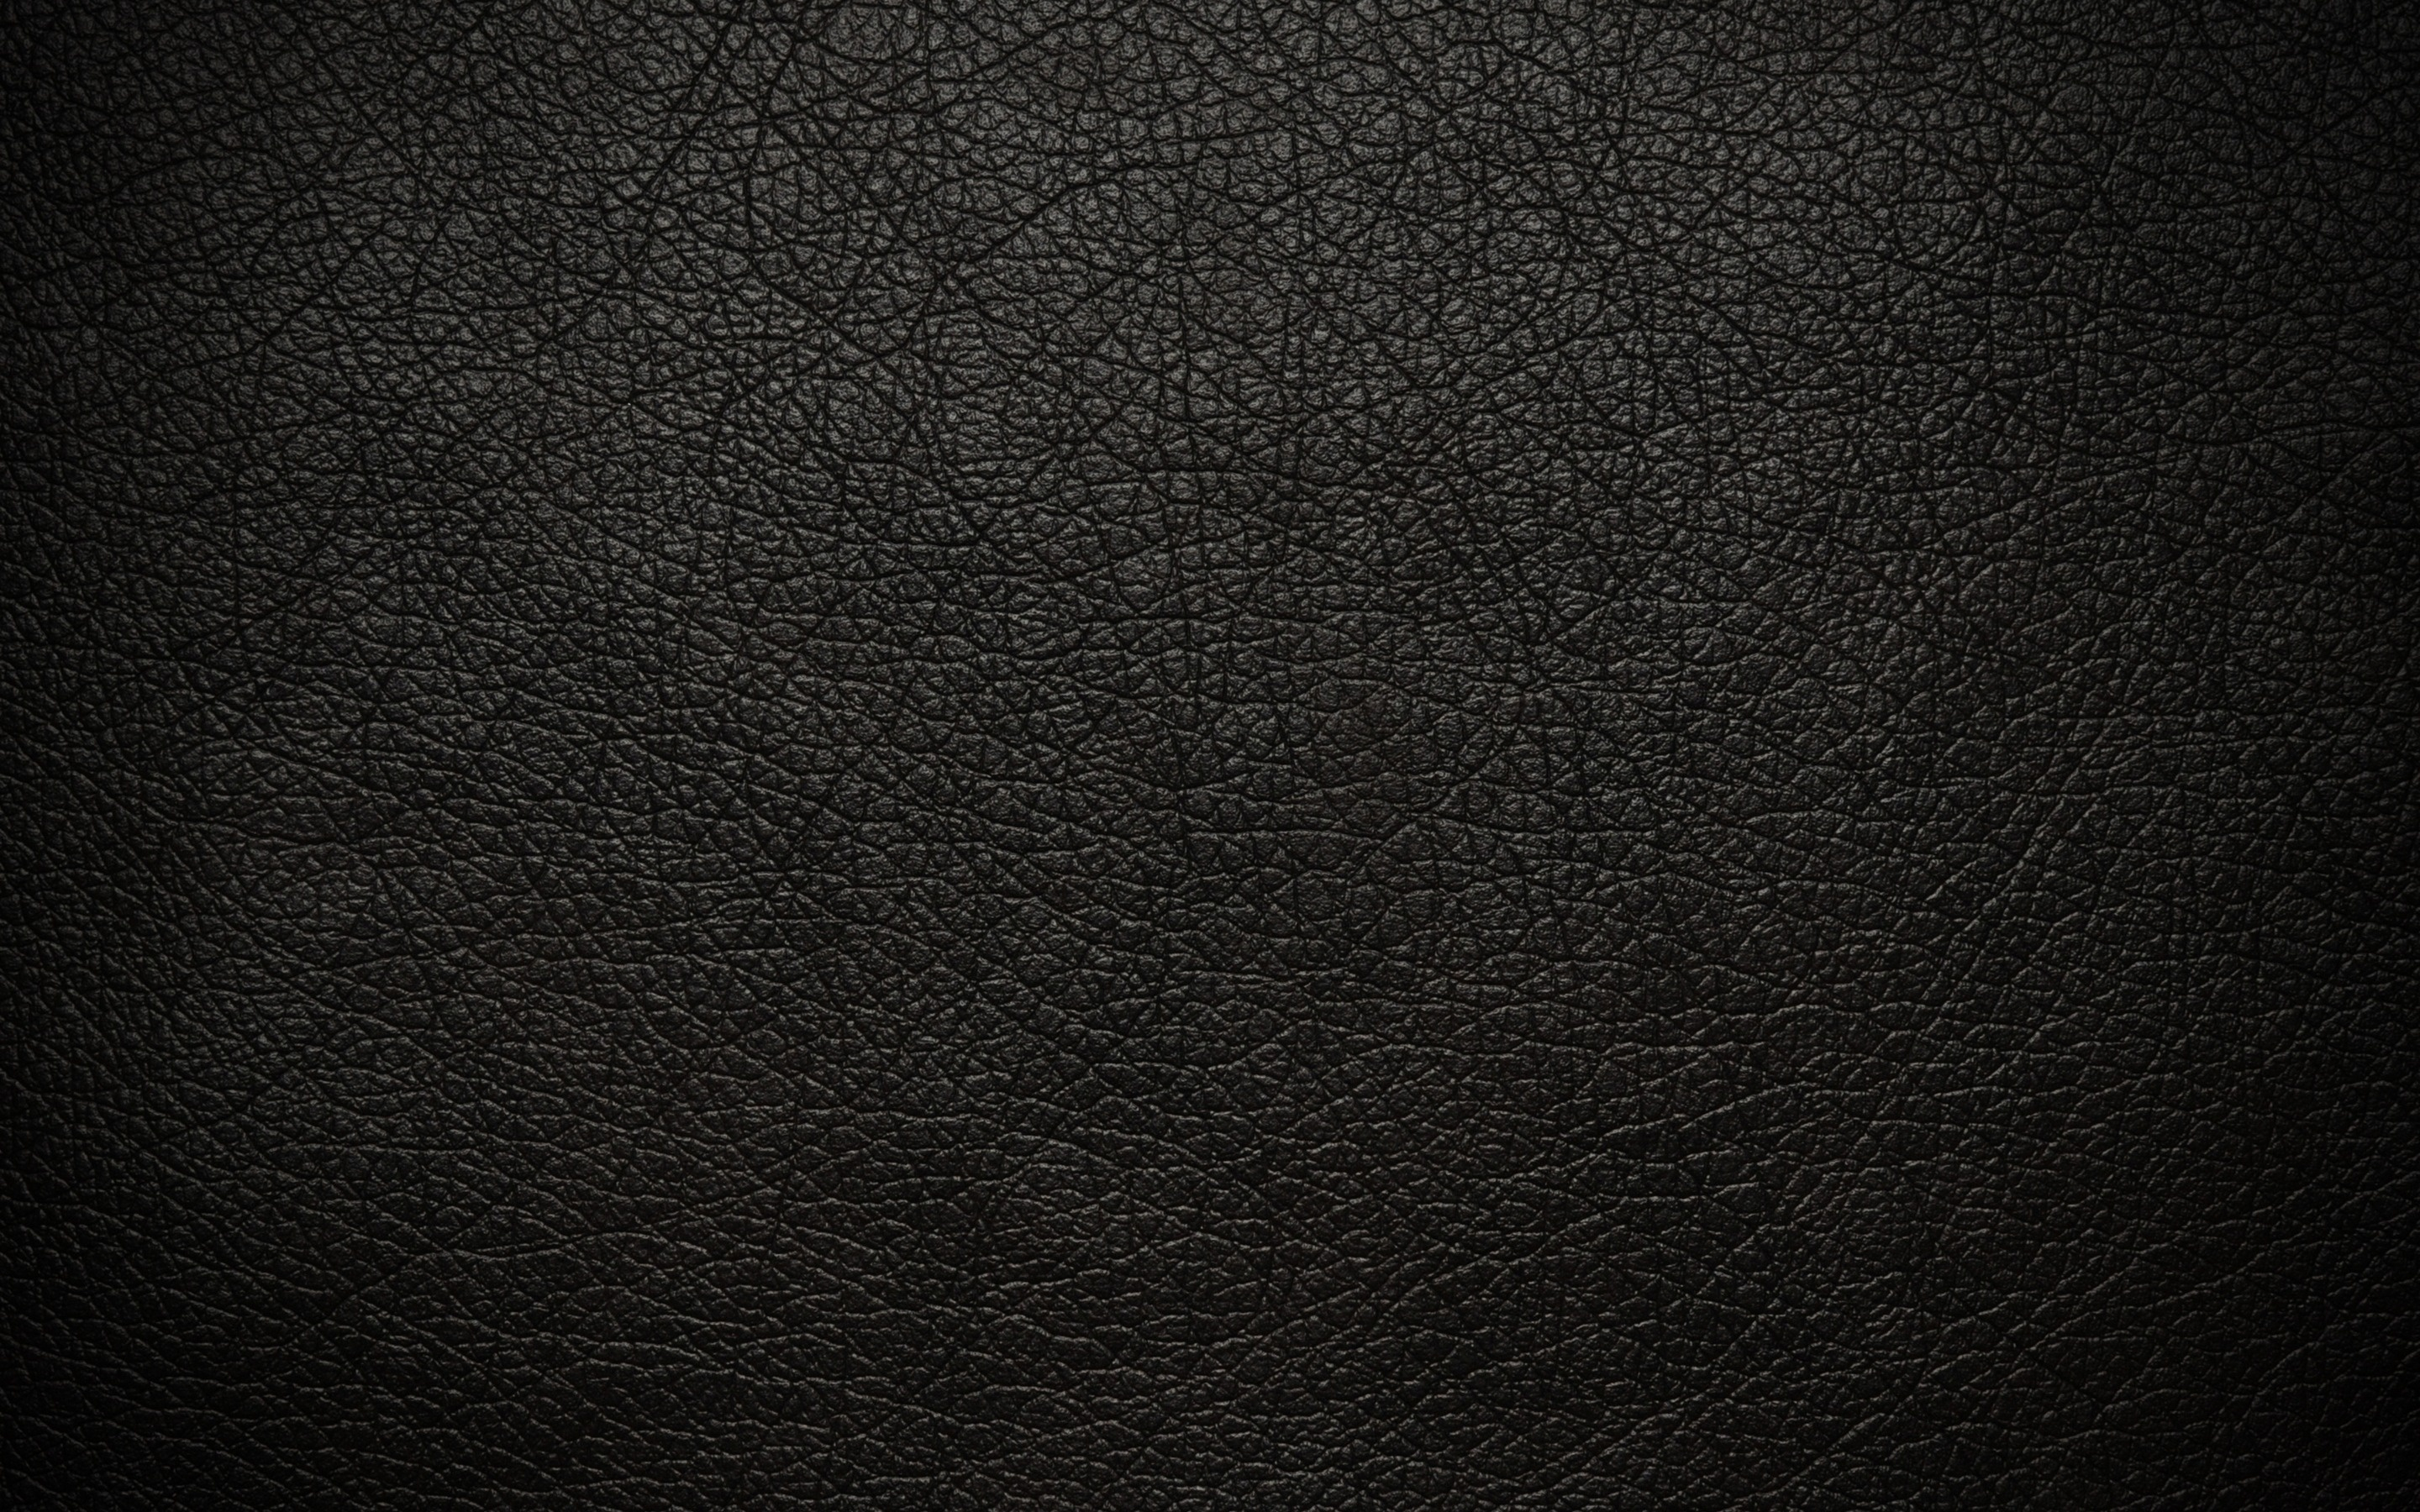 Free Leather Wallpaper